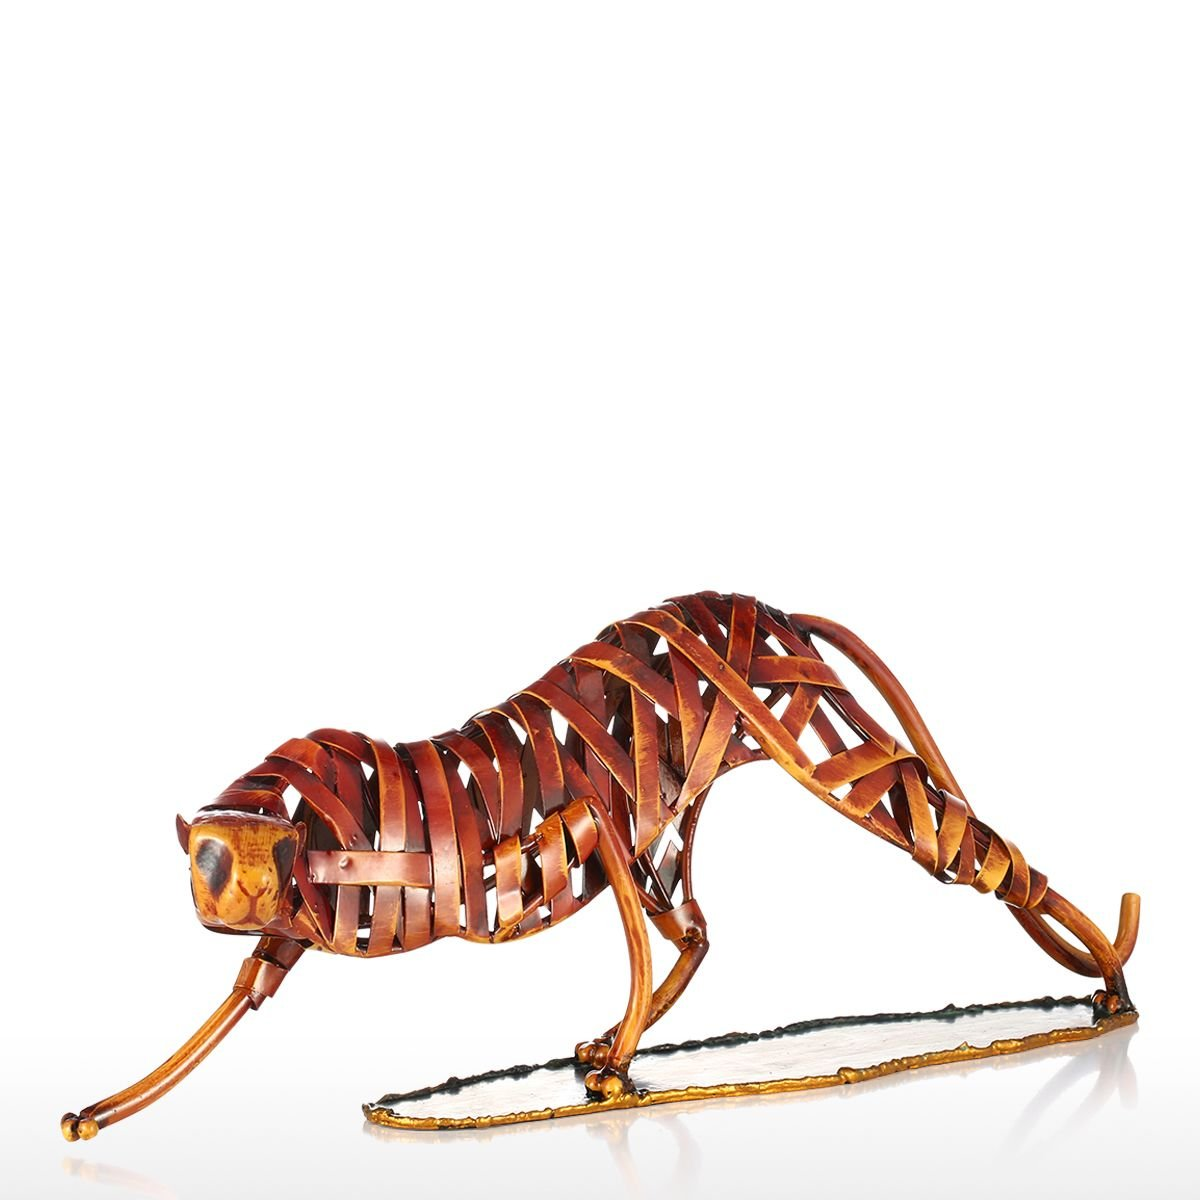 Tooarts Metal Weaving Leopard Modern Decorative Sculpture for Interior Decoration